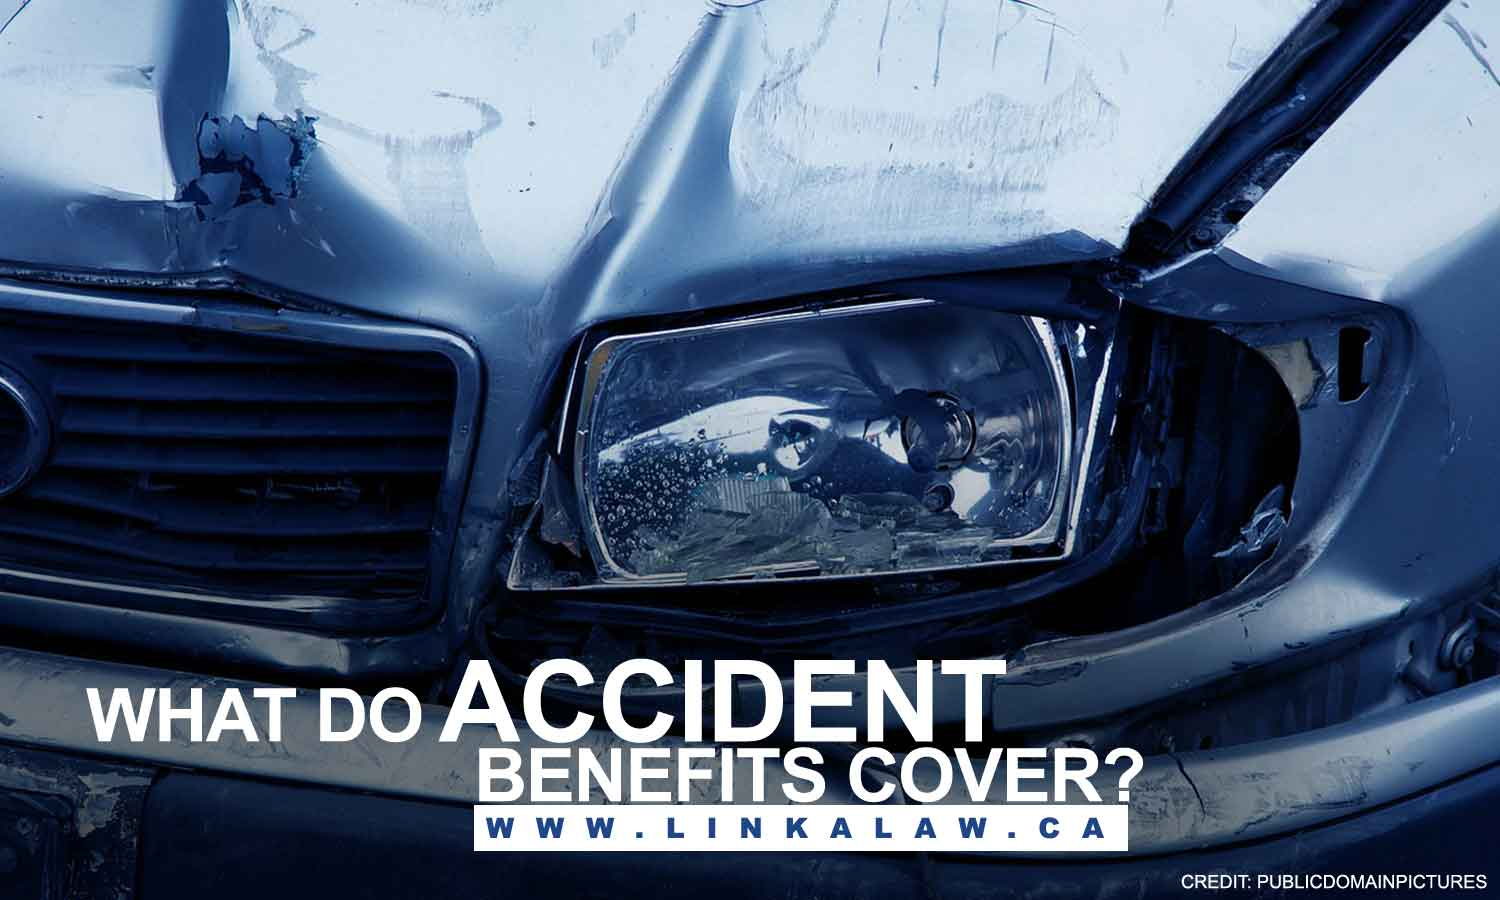 What do accident benefits cover?